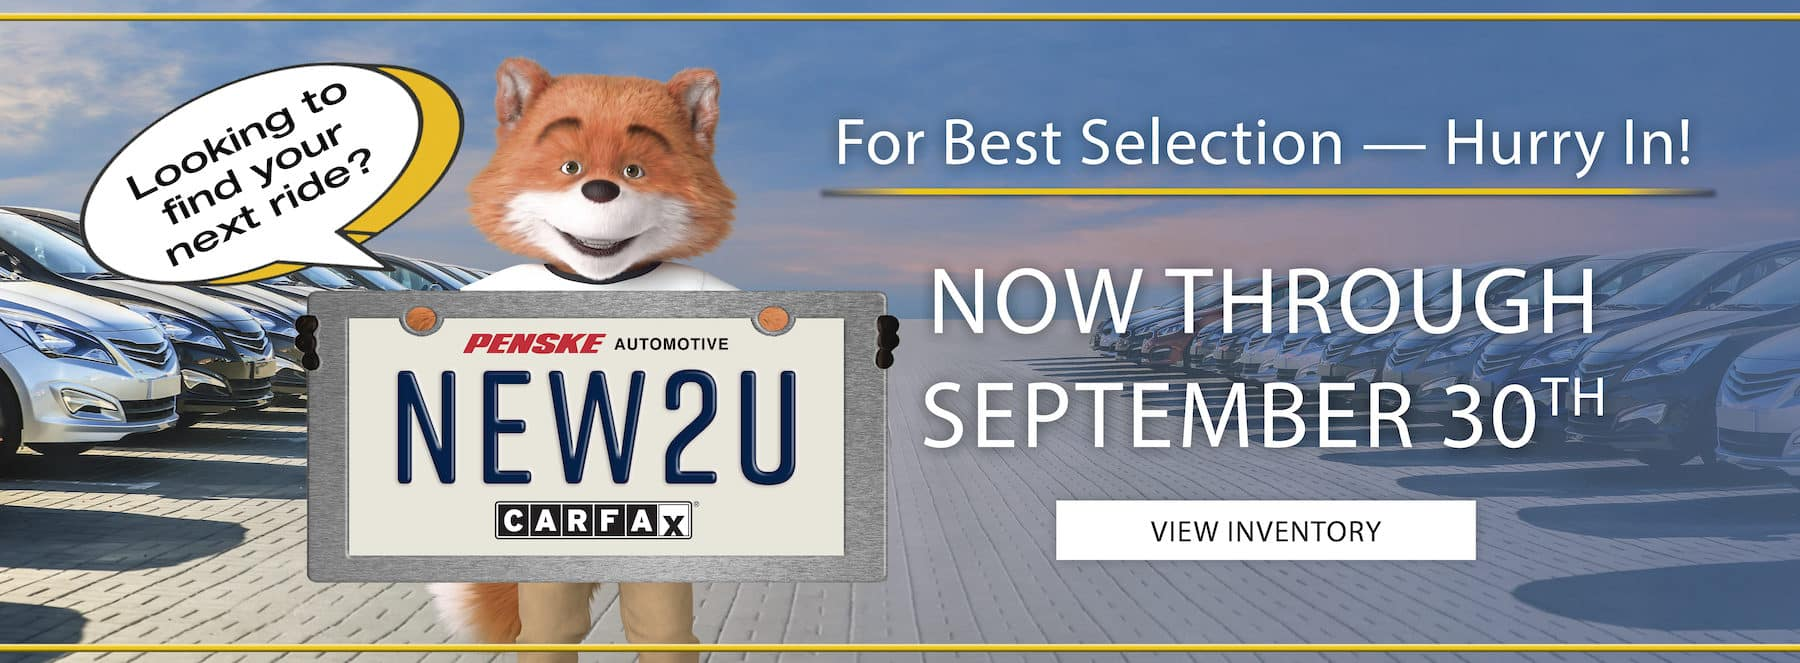 New 2 You CarFax